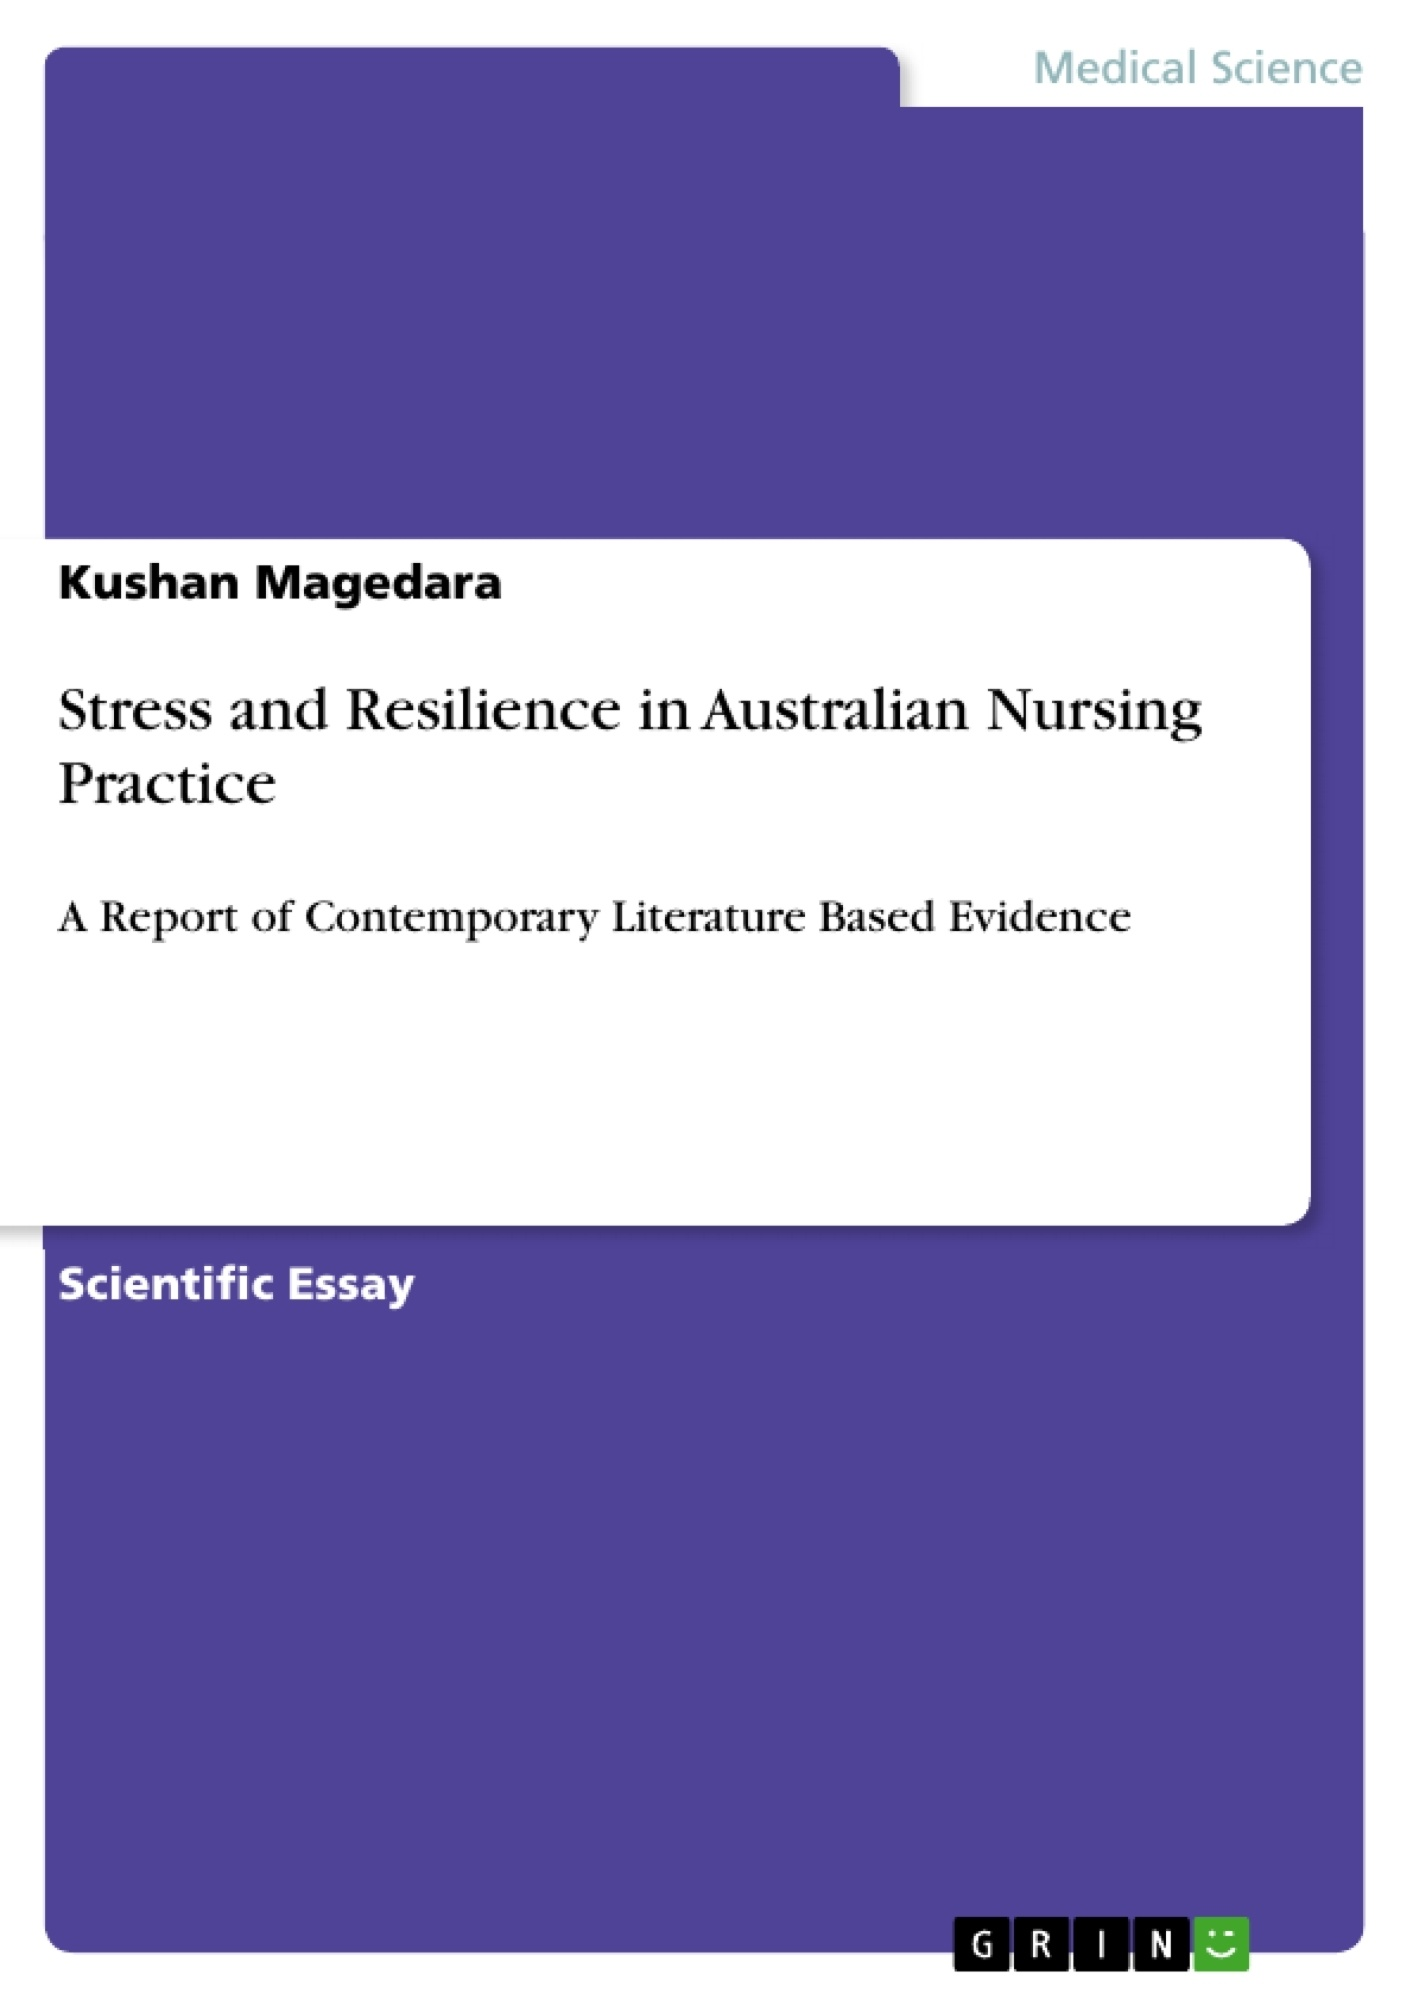 Title: Stress and Resilience in Australian Nursing Practice